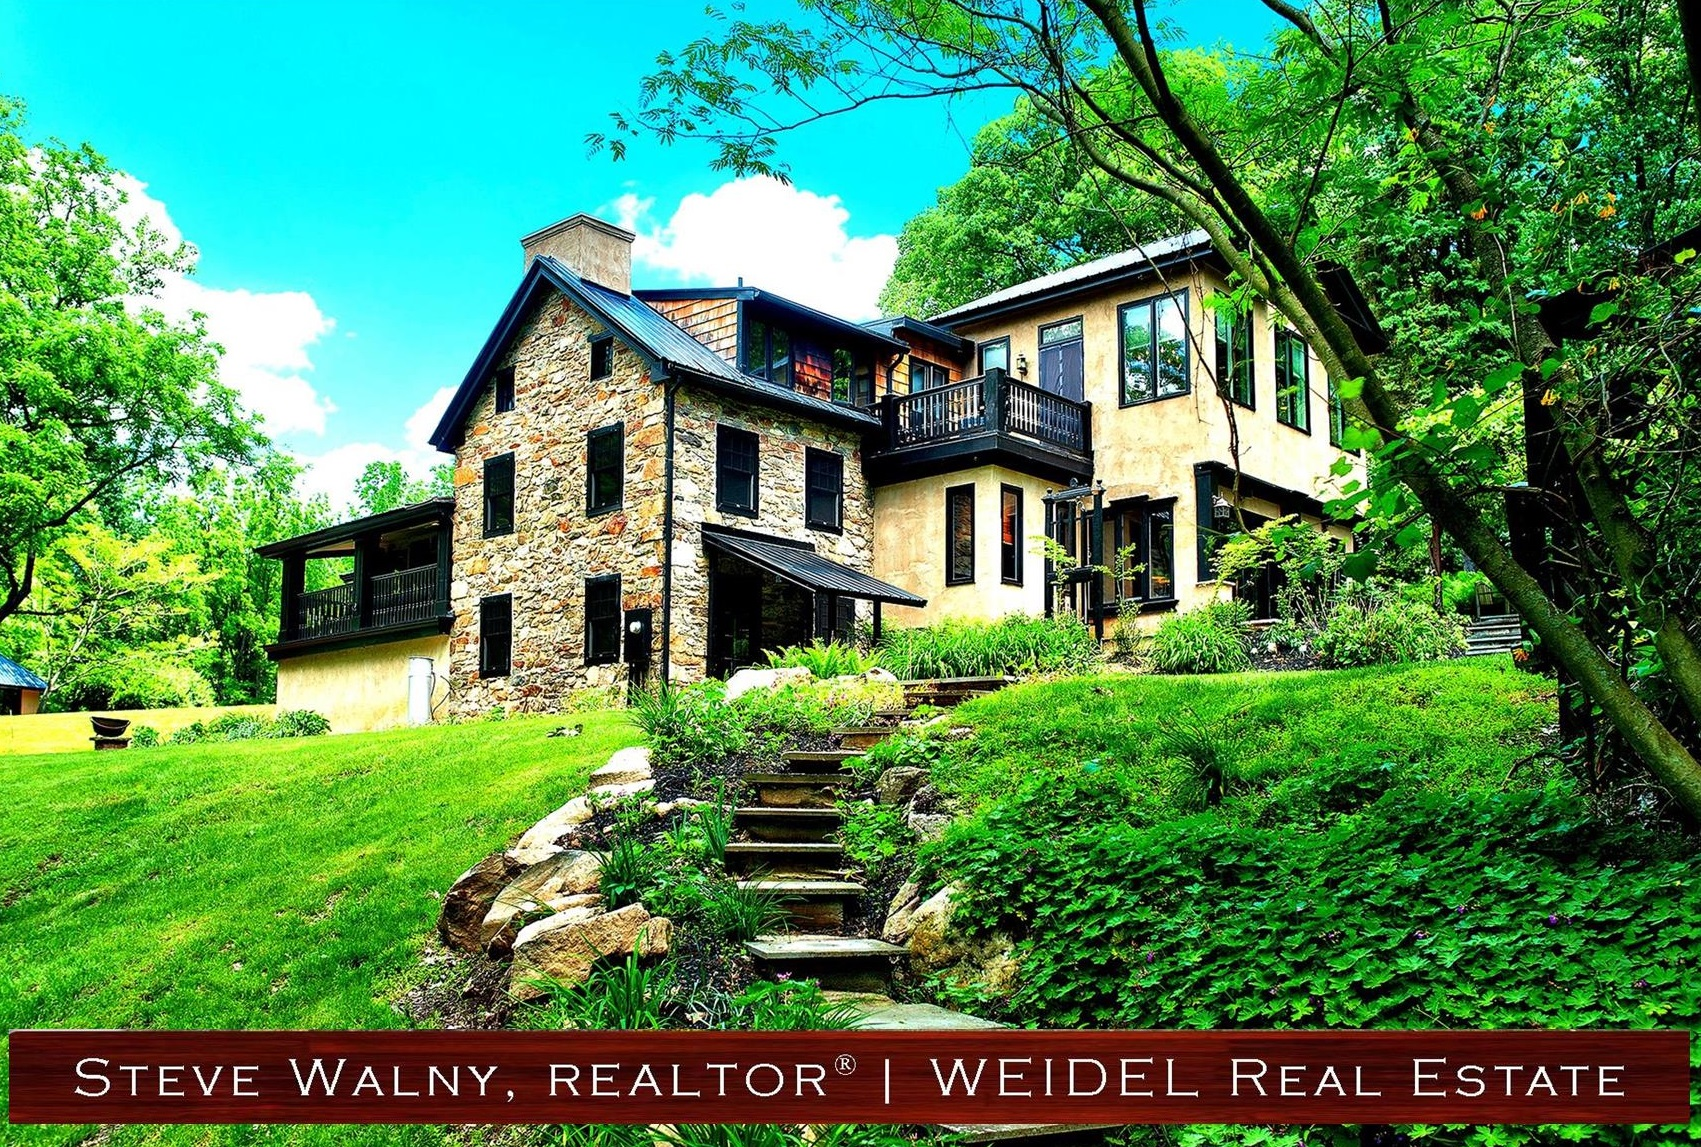 Stone Homes in Bucks County for Sale | New Hope Realtor | Steve Walny